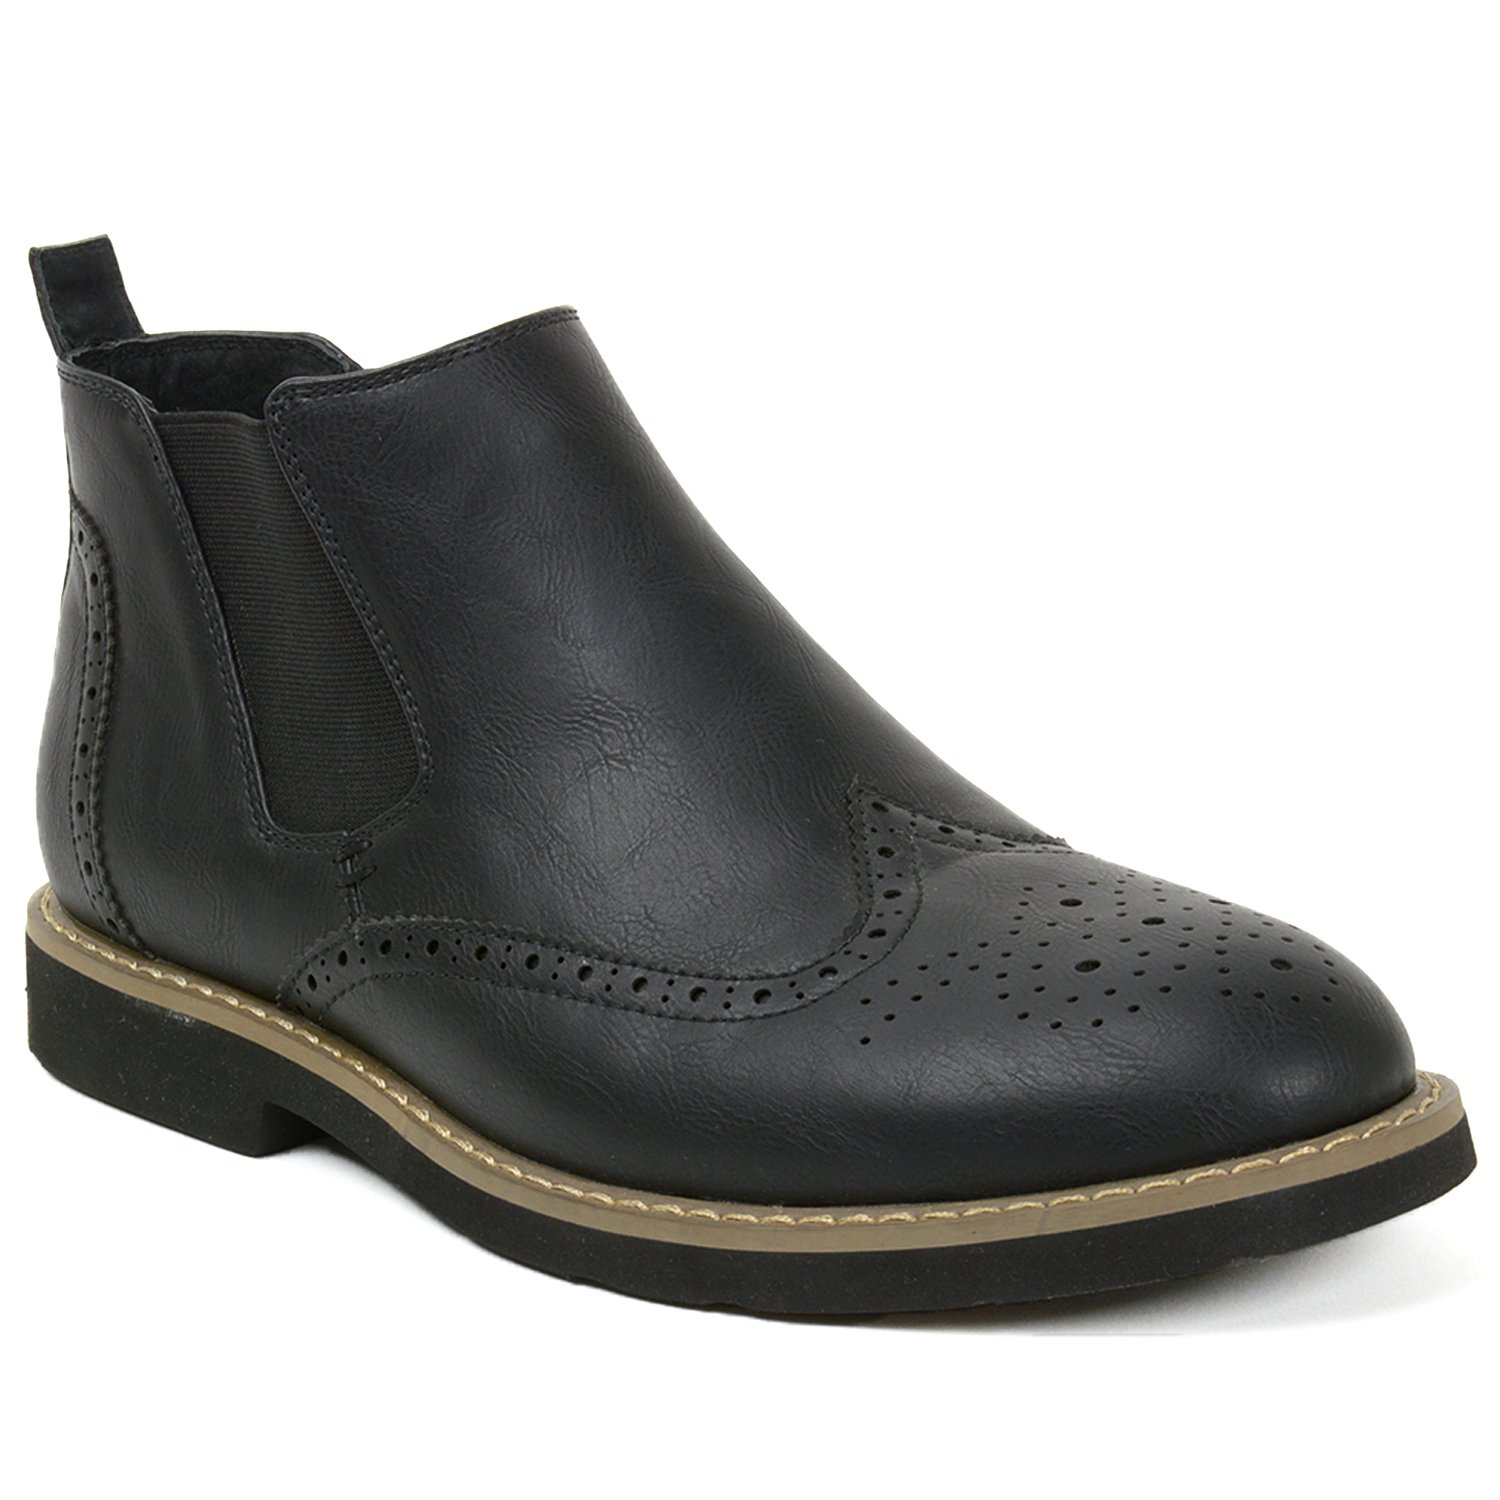 alpine swiss Bulle Mens Suede Lined Wing Tip Chelsea Ankle Boots Black 9 M US